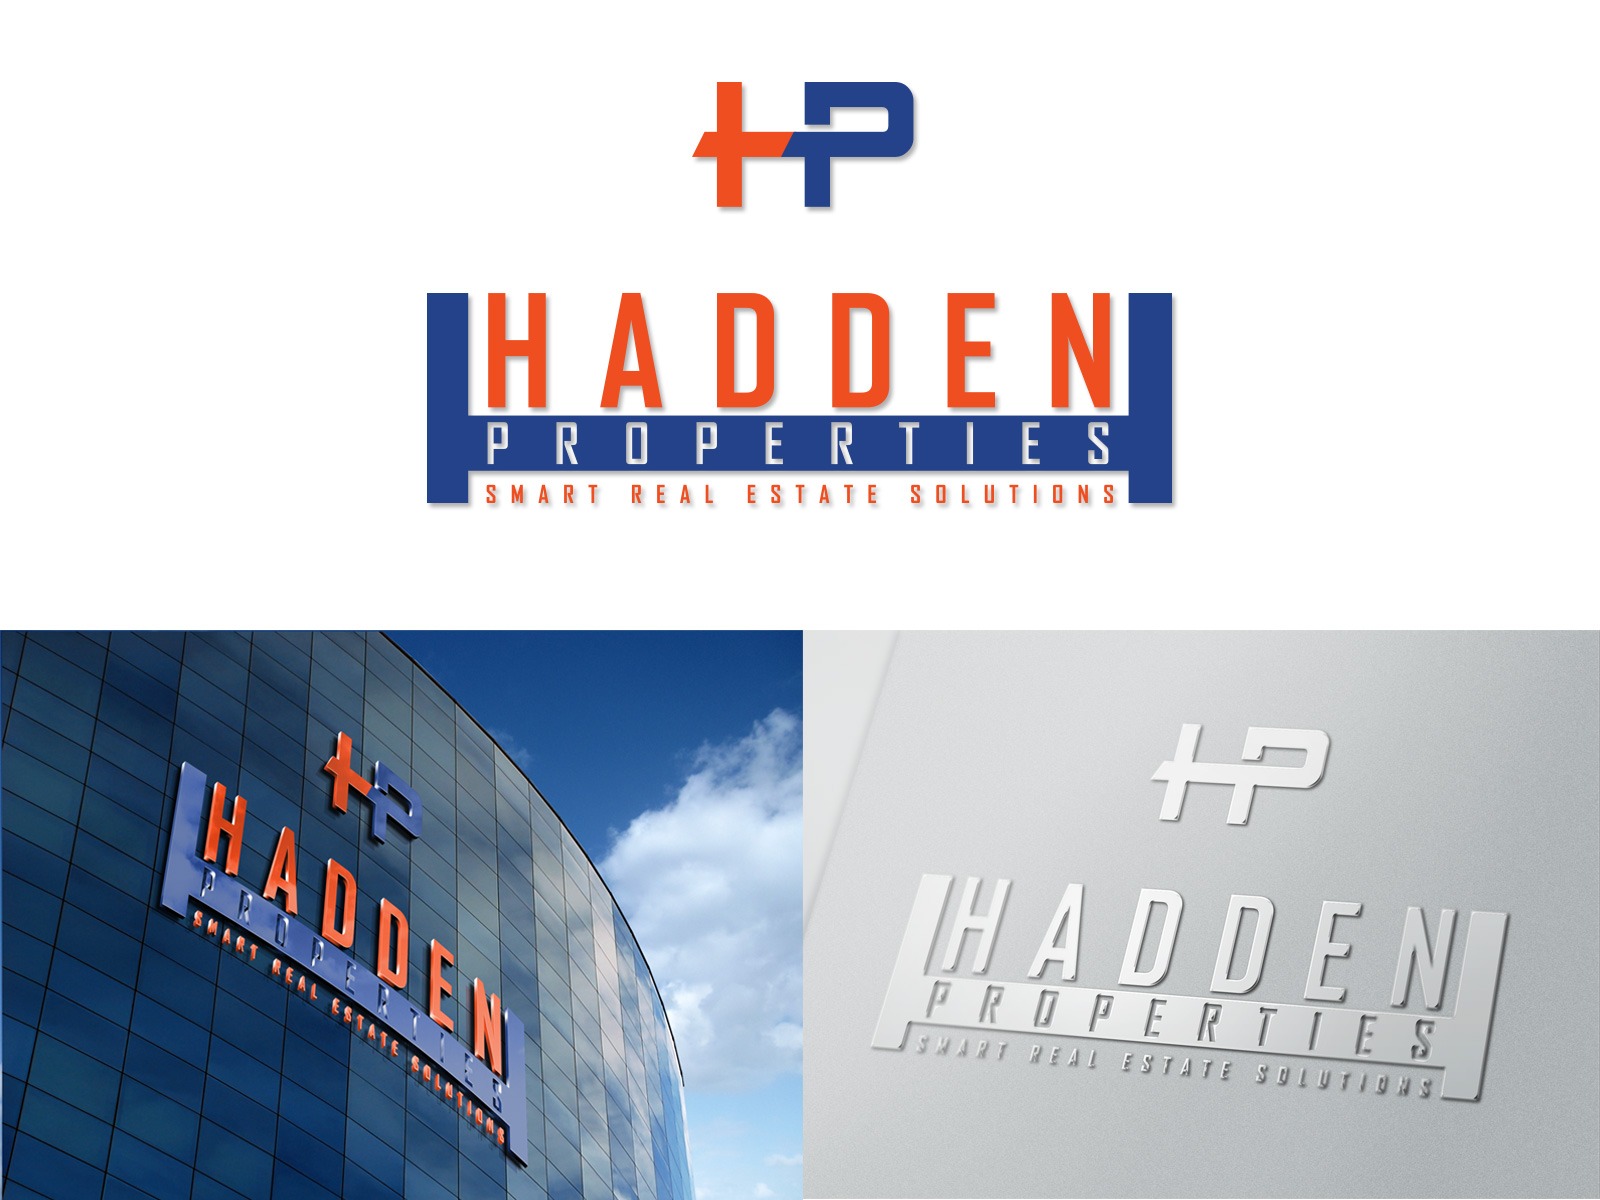 Logo Design by olii - Entry No. 177 in the Logo Design Contest Artistic Logo Design for Hadden Properties.